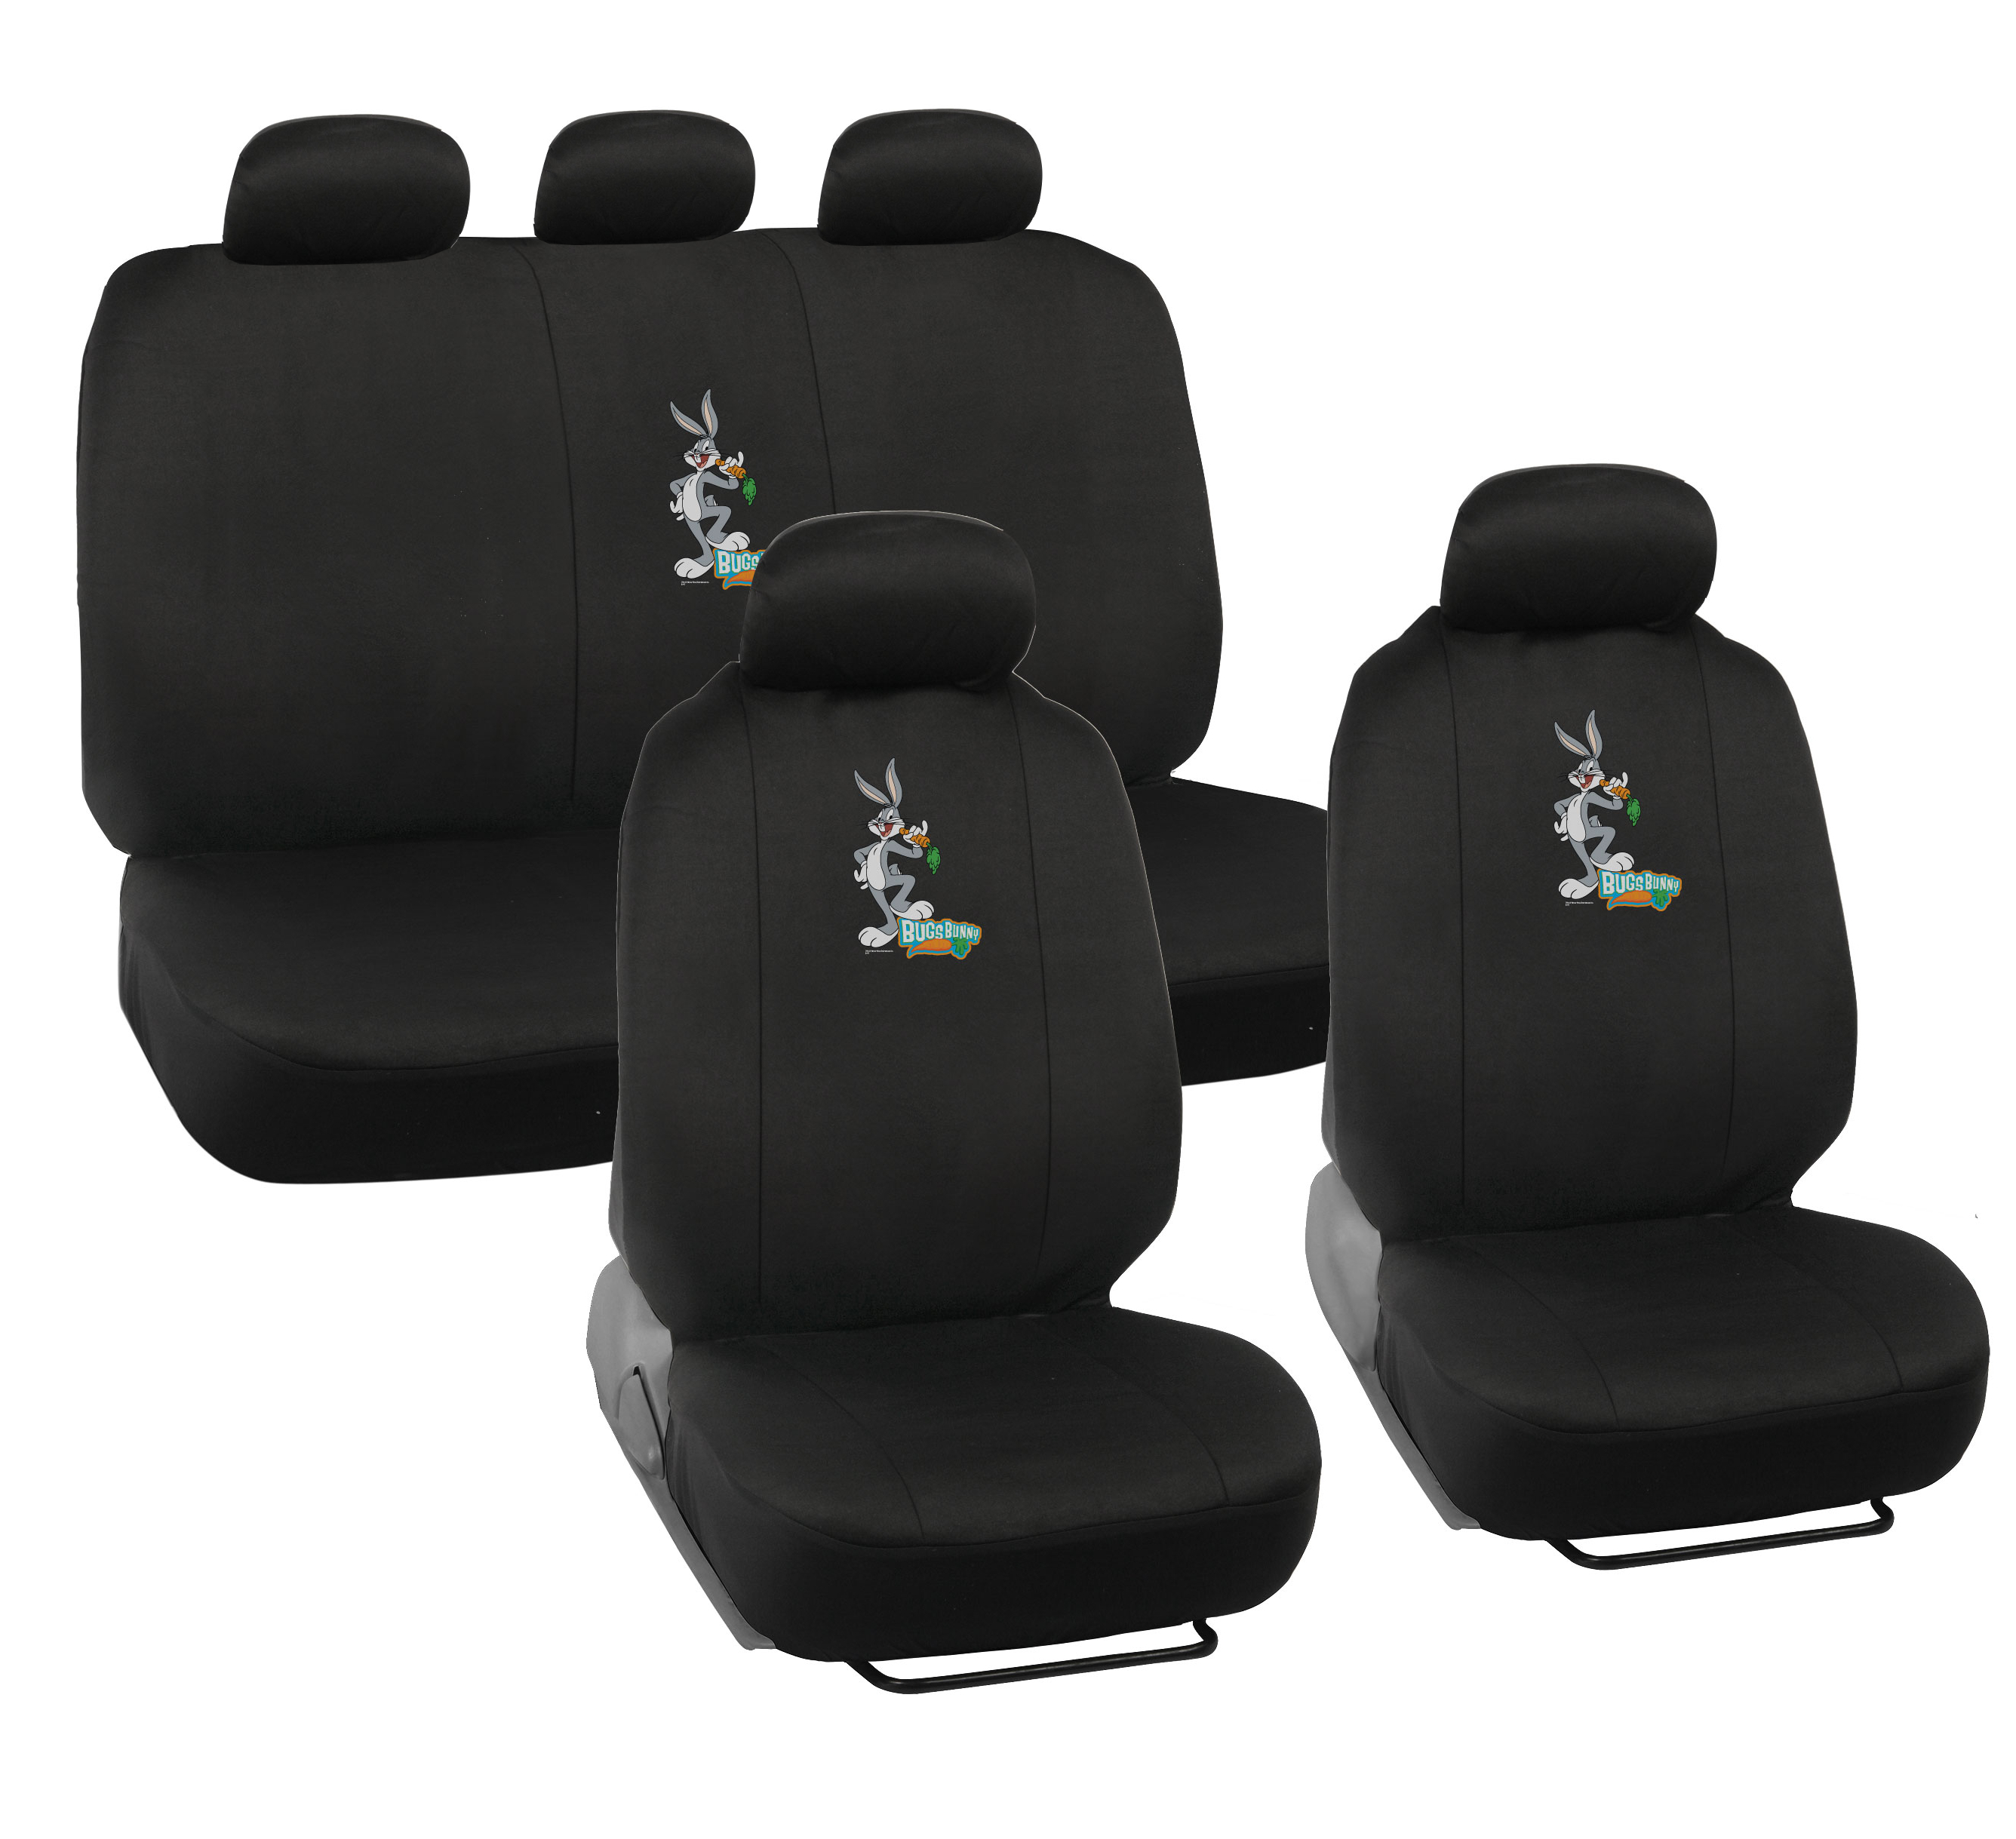 Cartoon Character Bugs Bunny Seat Covers For Car SUV Truck W Head Rest Cover